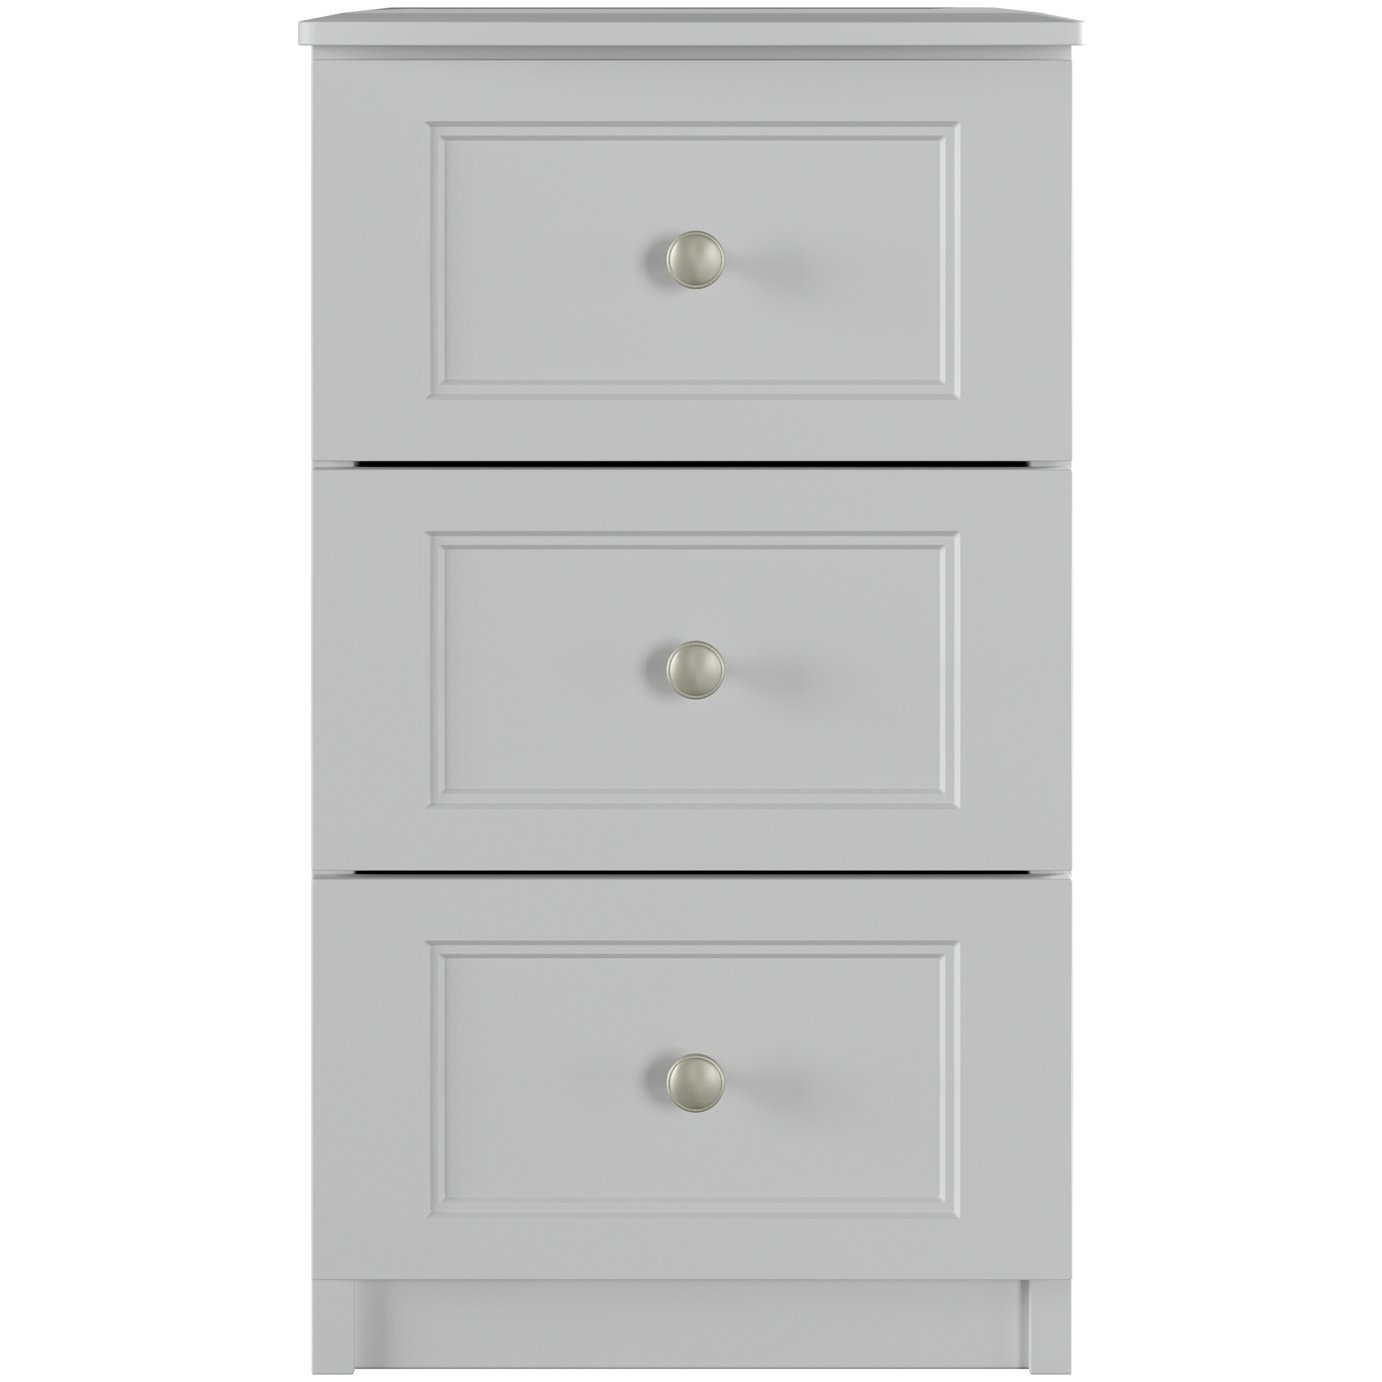 One Call Bexley 3 Drawer Bedside Cabinet - Grey